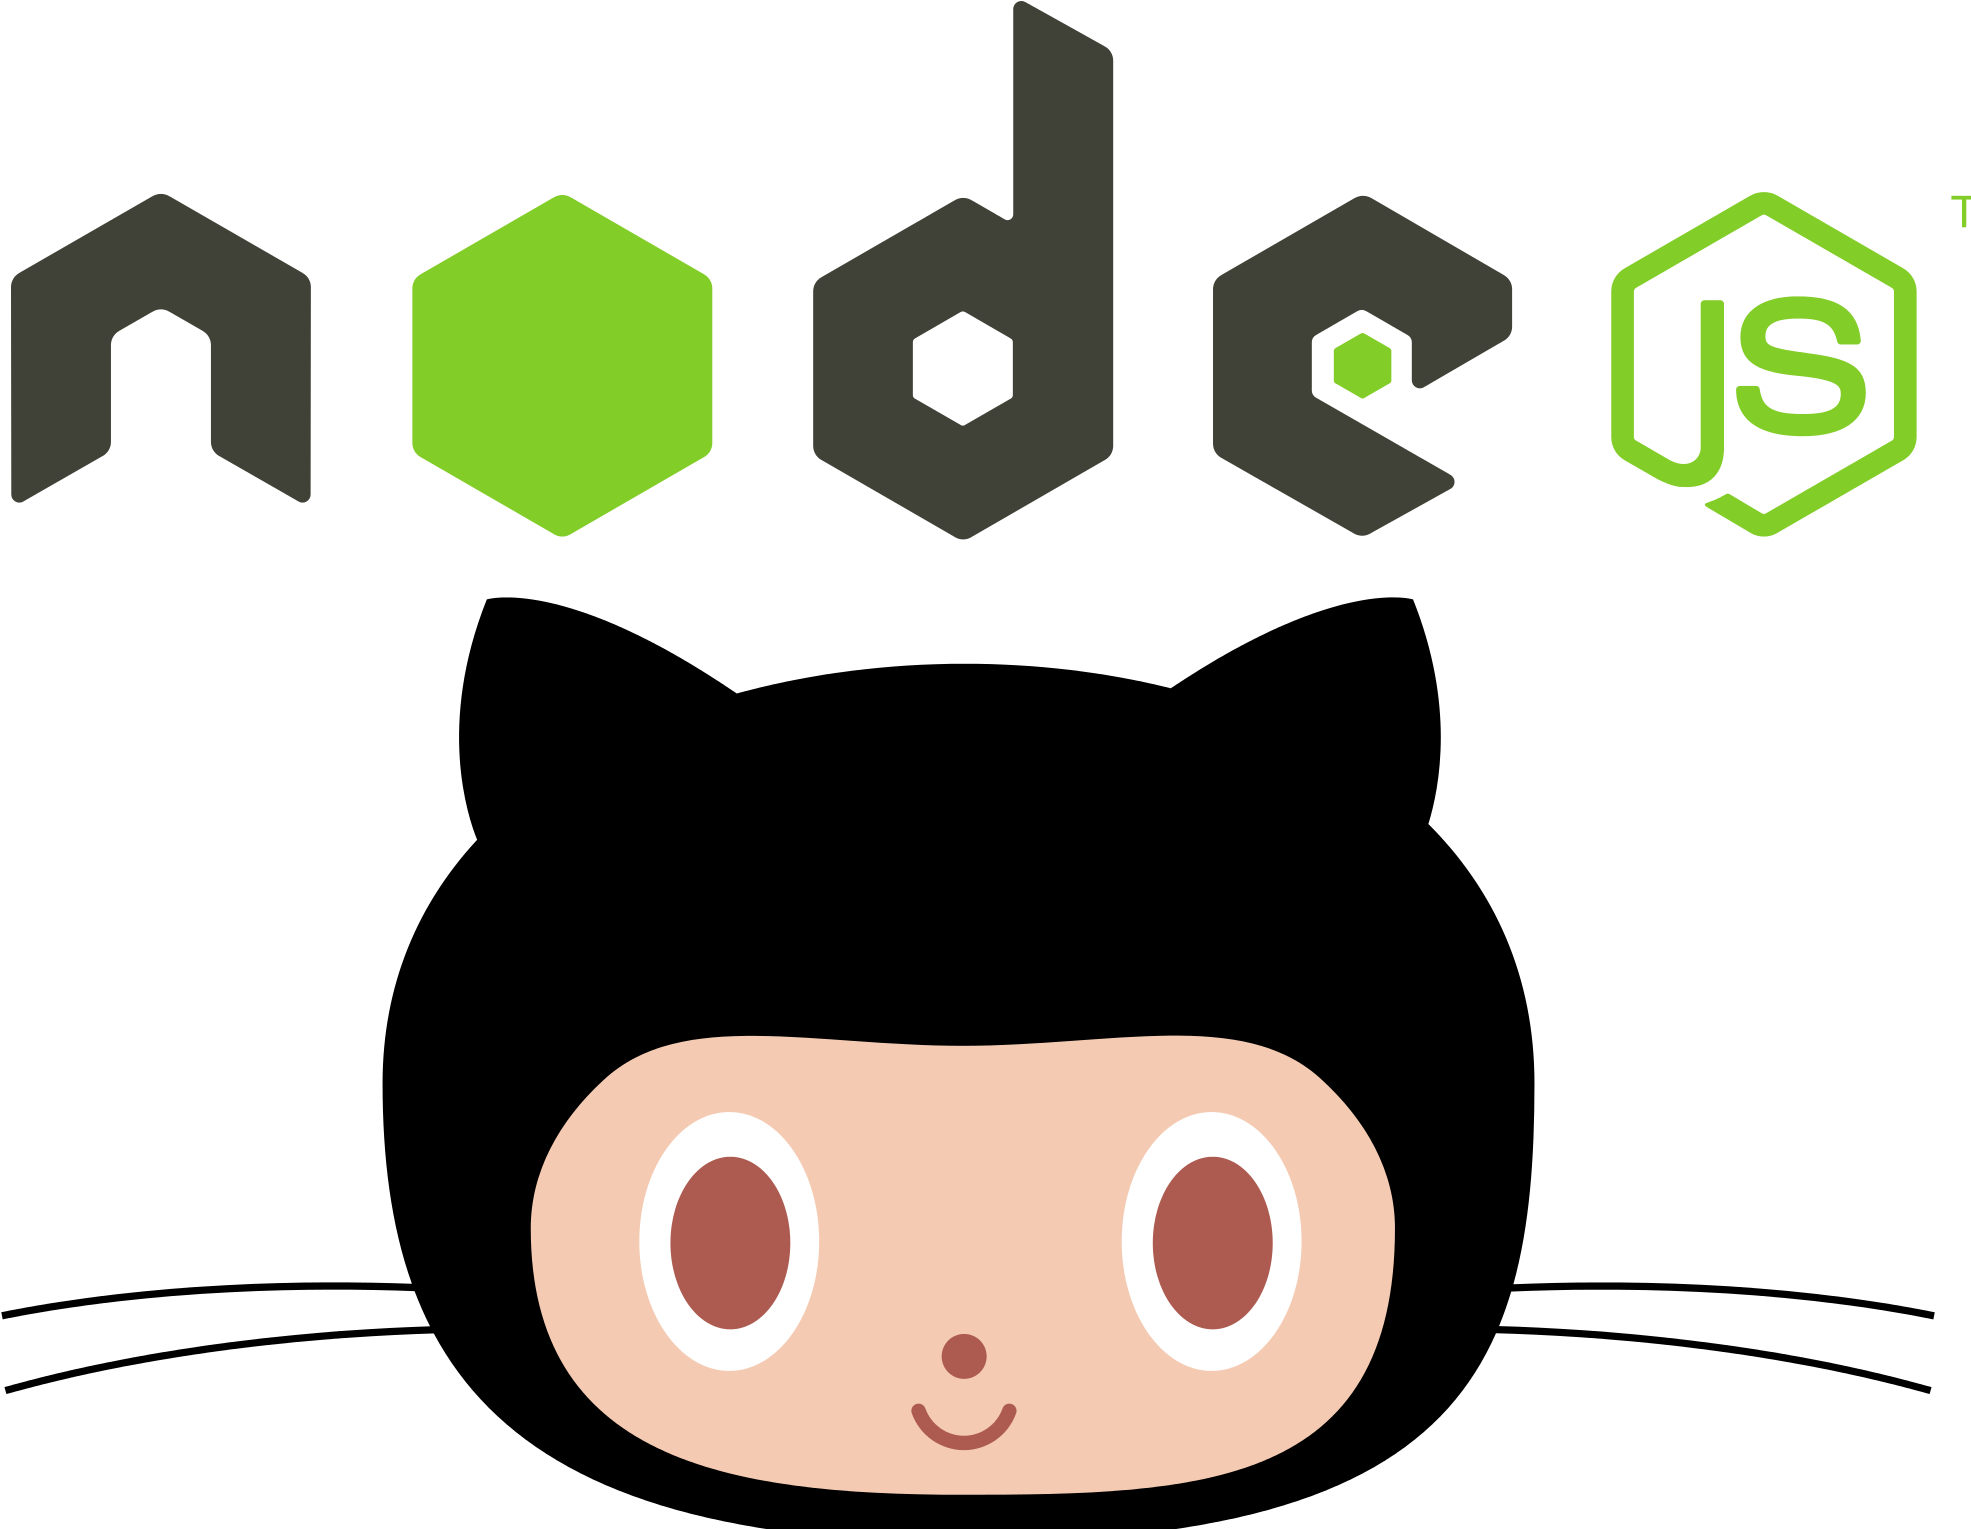 Nodejs On Octo.